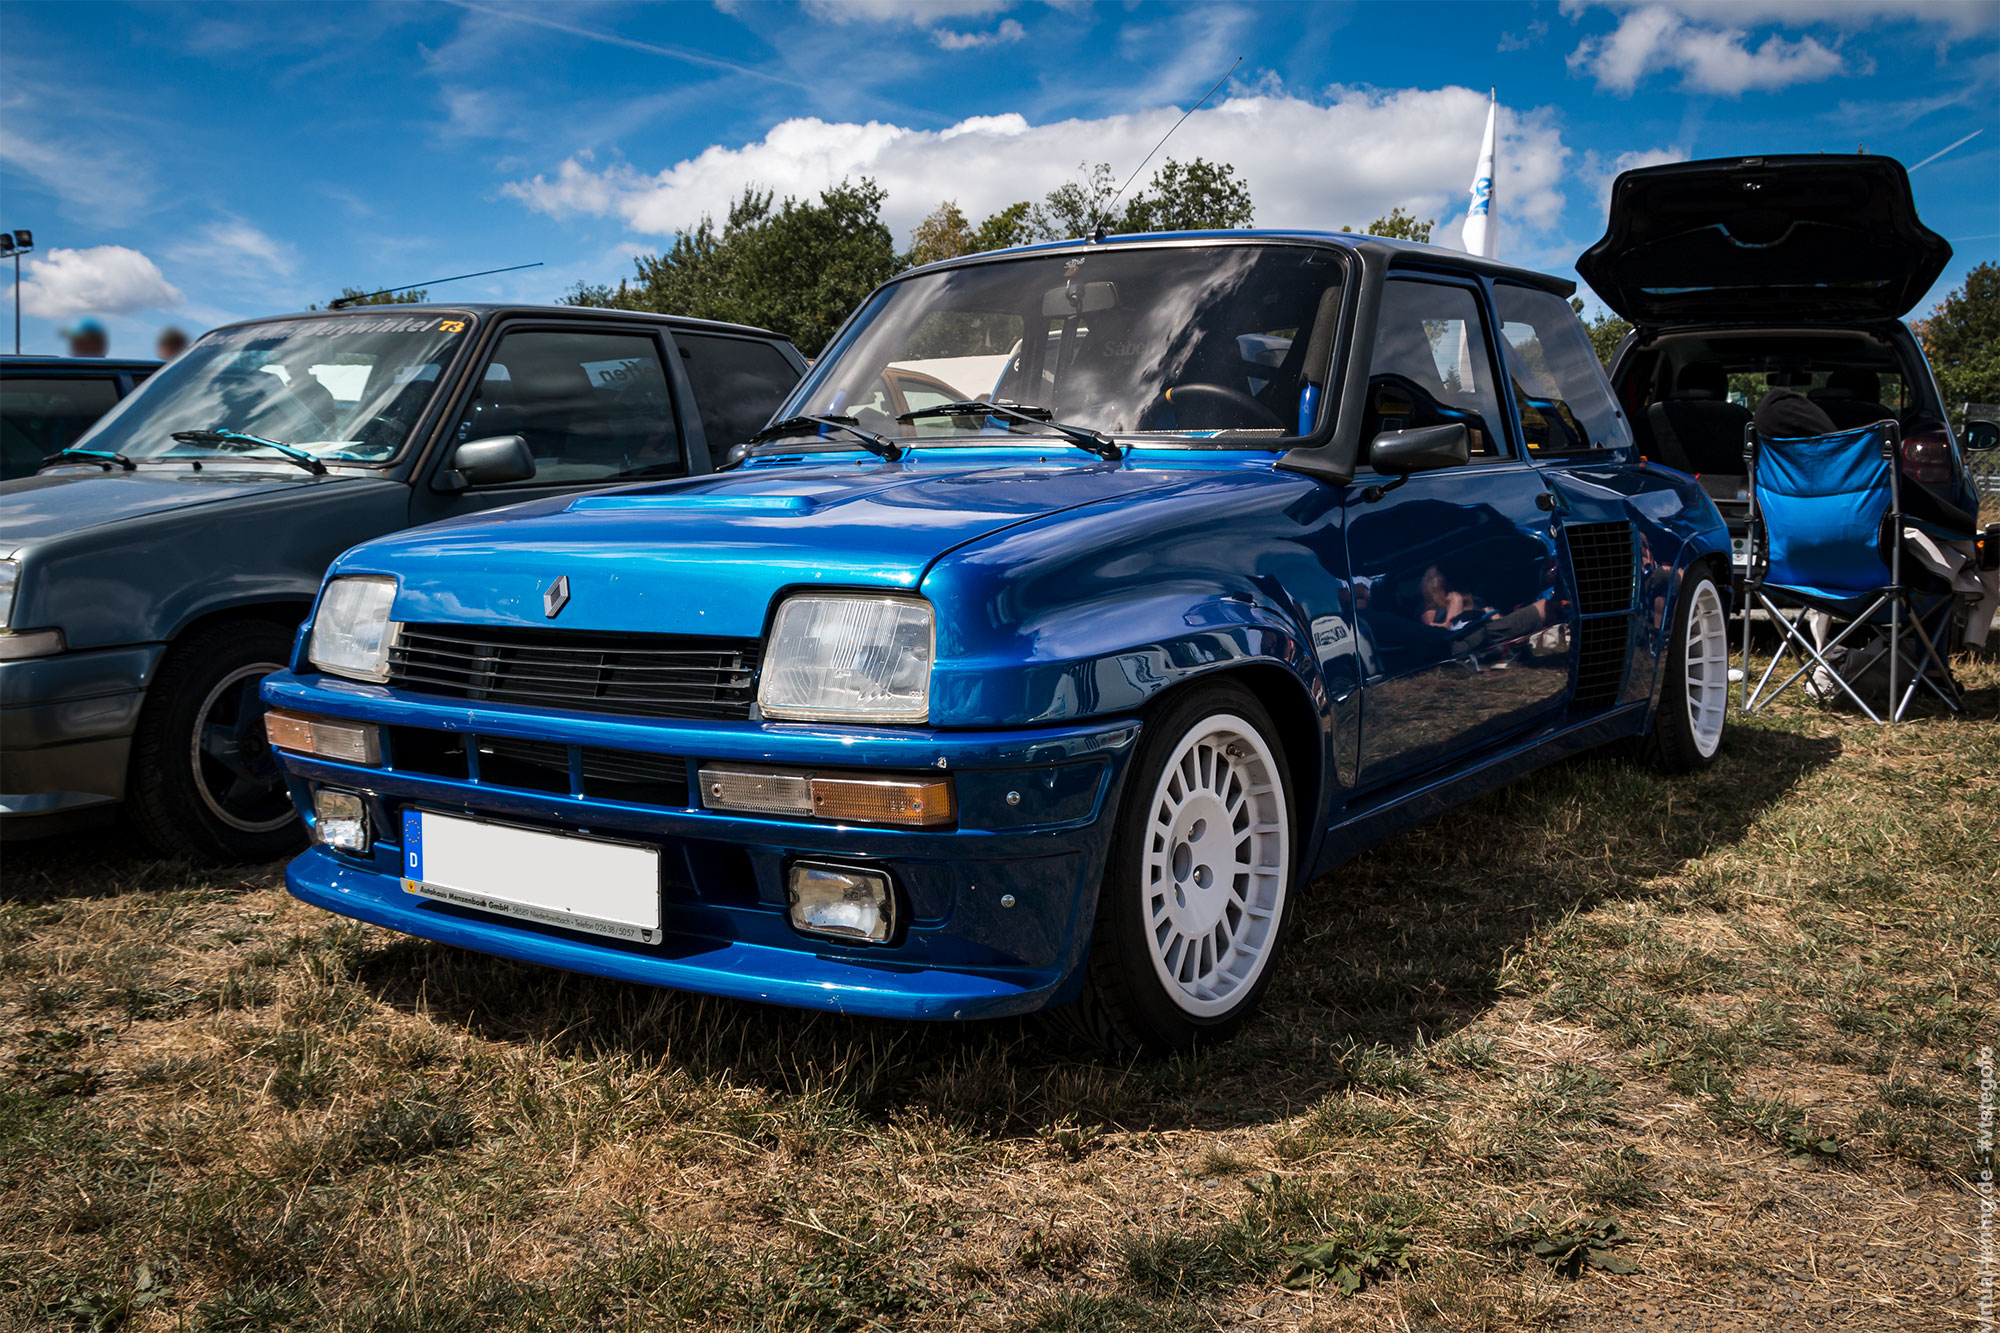 Renault 5 Turbo - D´ARC Sommertreffen 2018 am Nürburgring